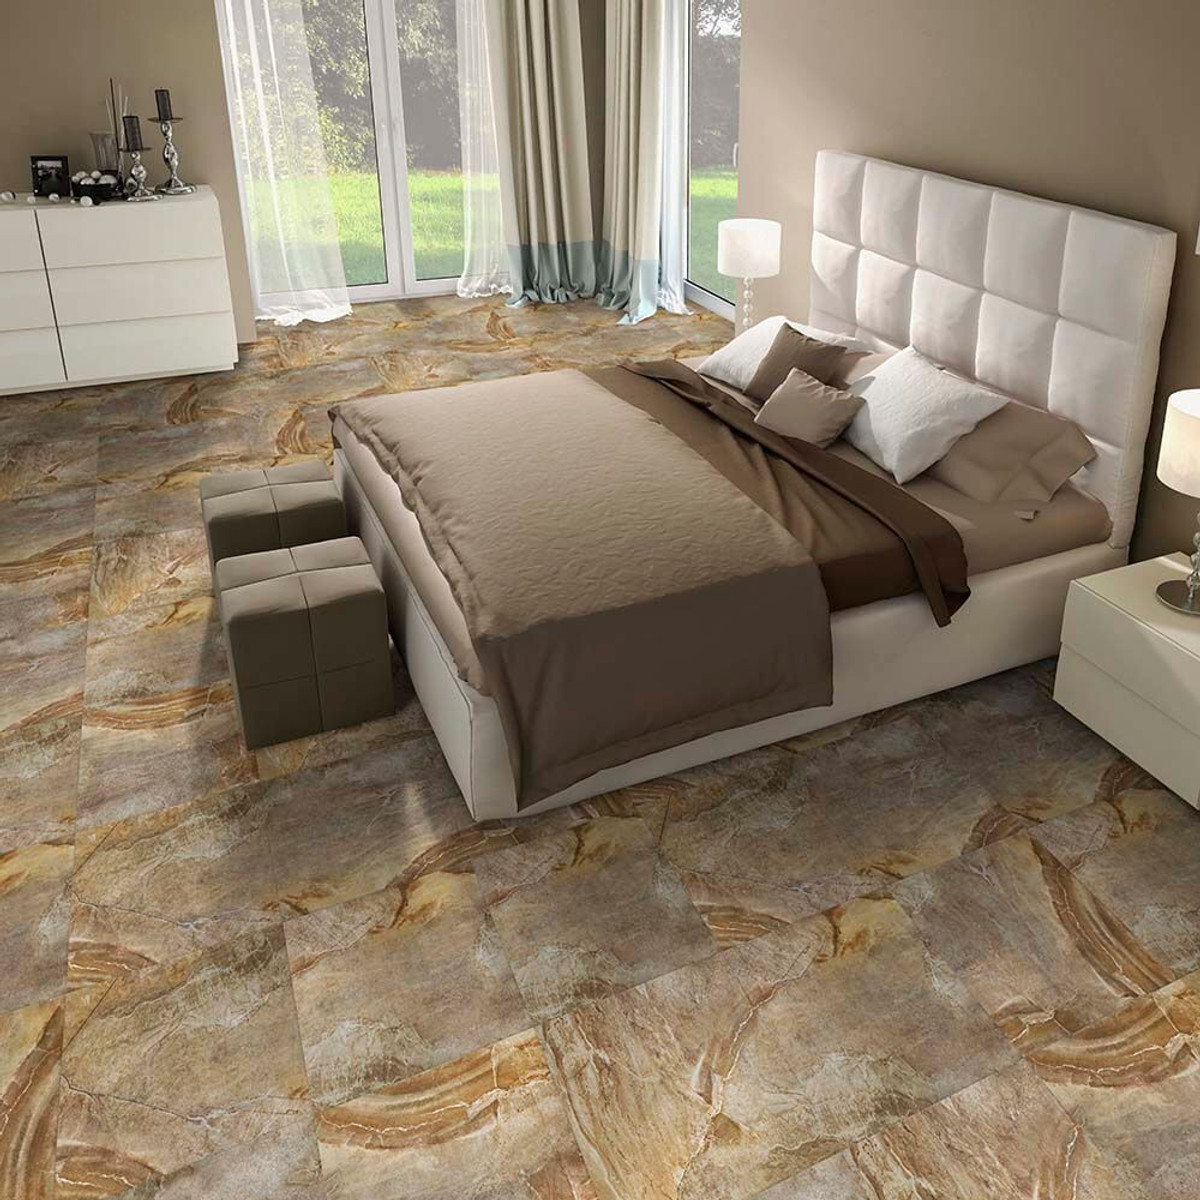 floor cs x per tile perfection in room fieldstone floors living a livingroom natural setting field stone